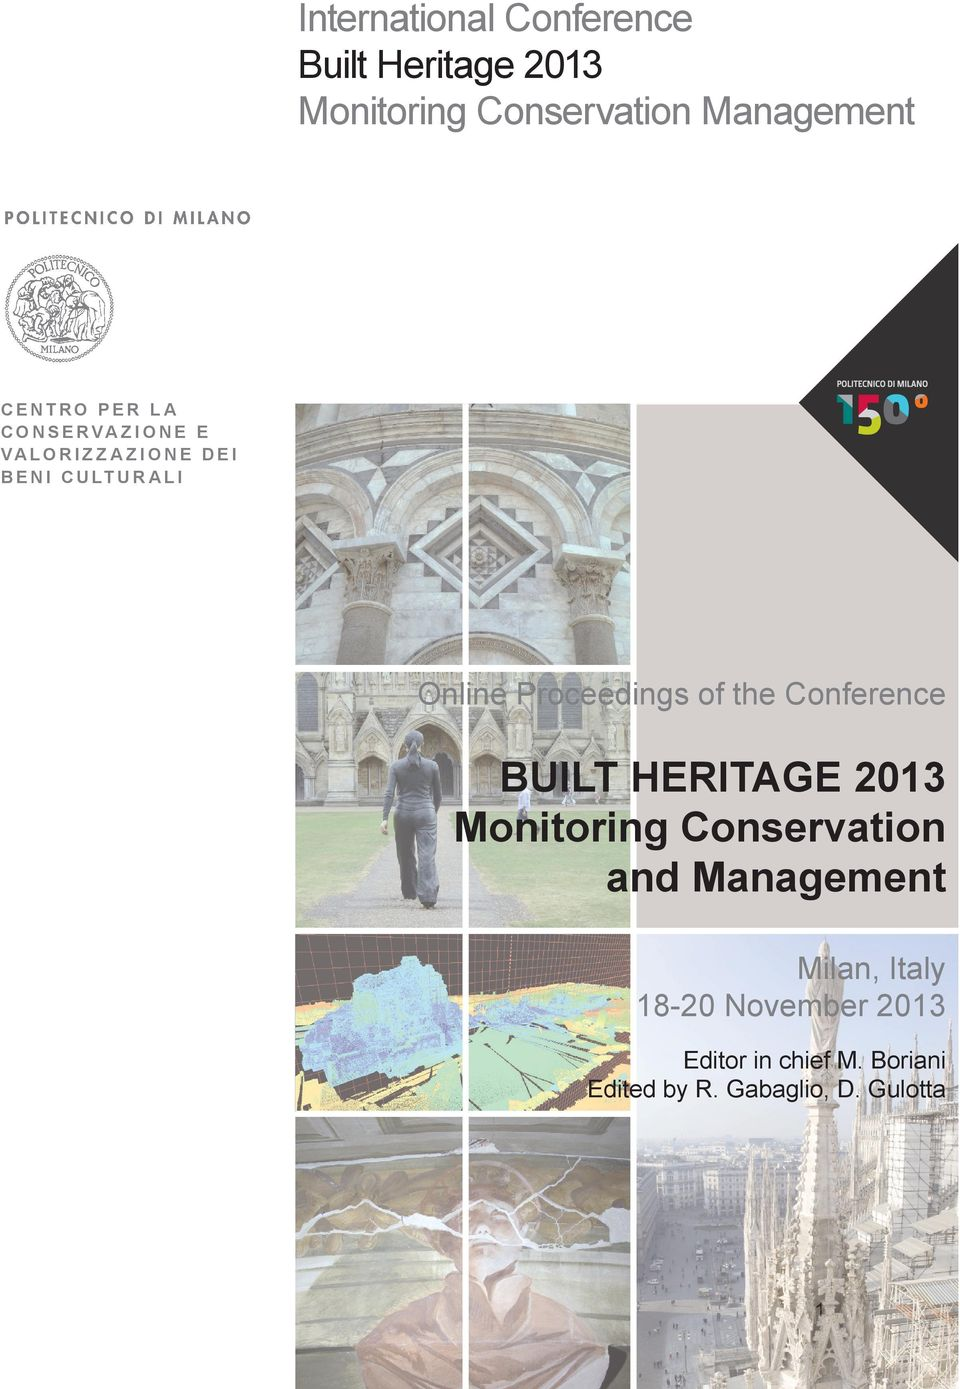 Online Proceedings of the Conference BUILT HERITAGE 2013 Monitoring Conservation and